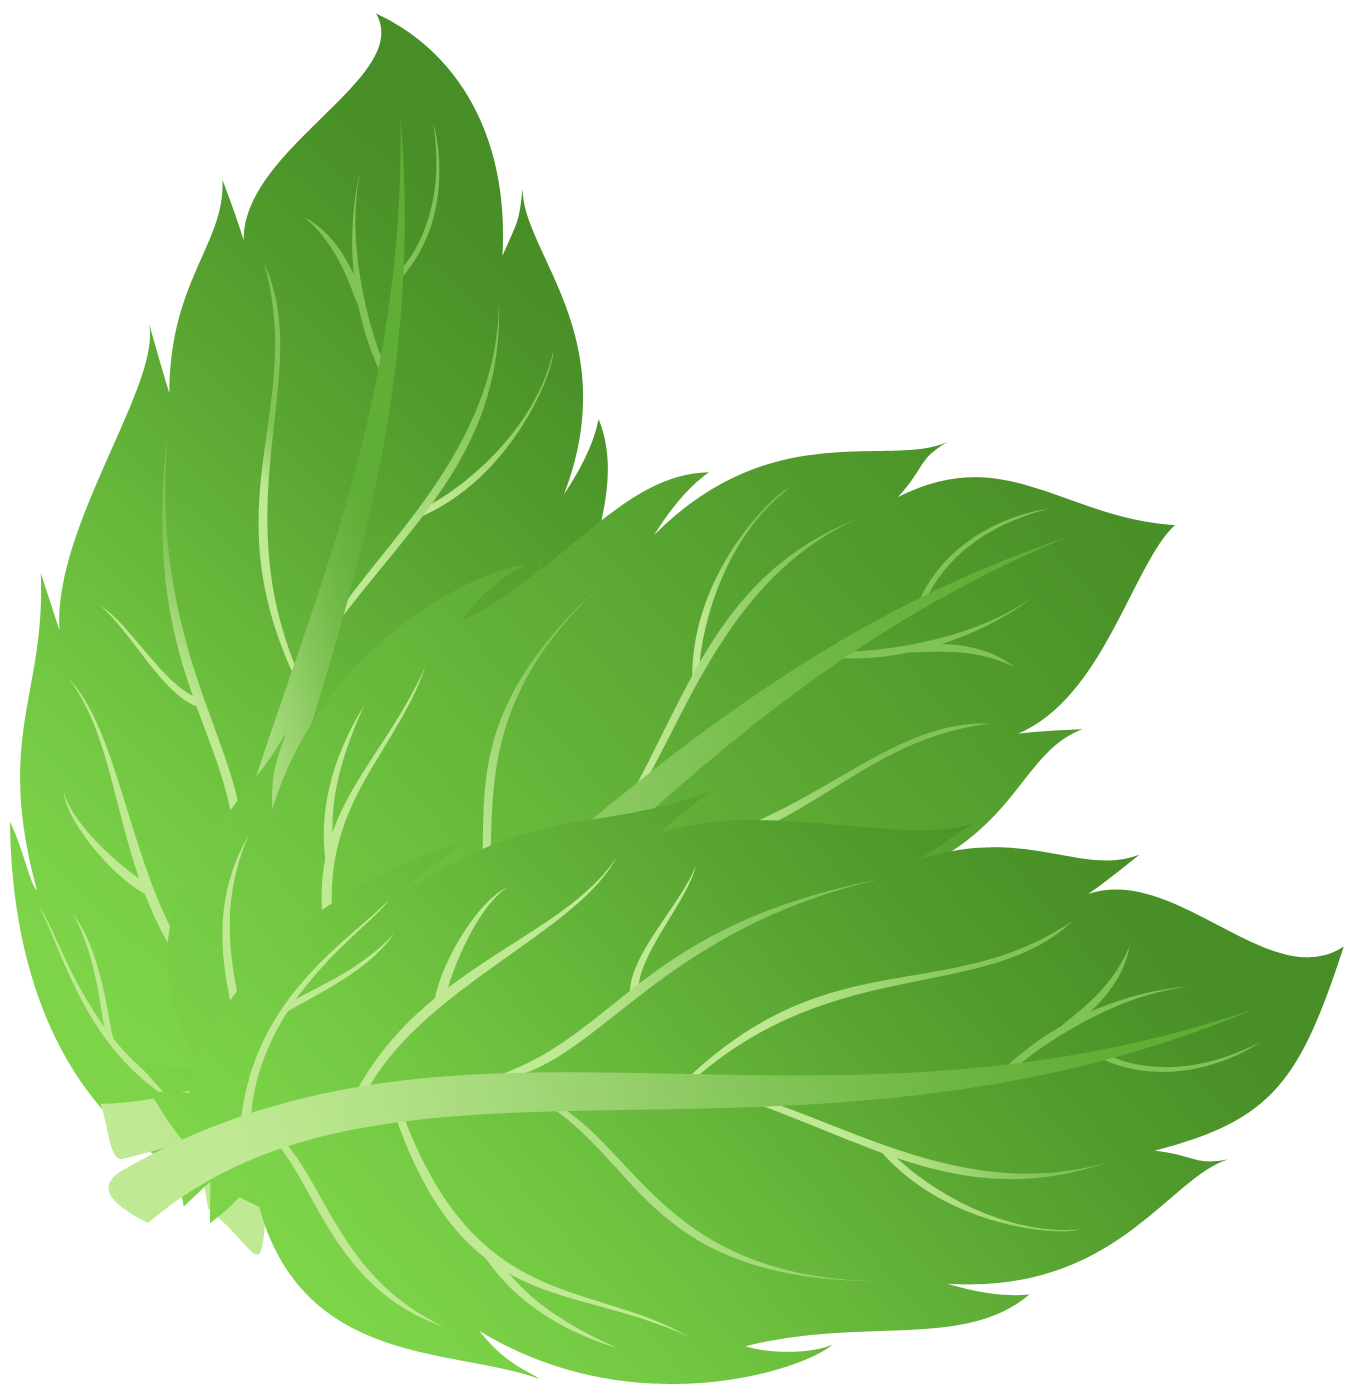 Pepermint images free download. Leaf vector png